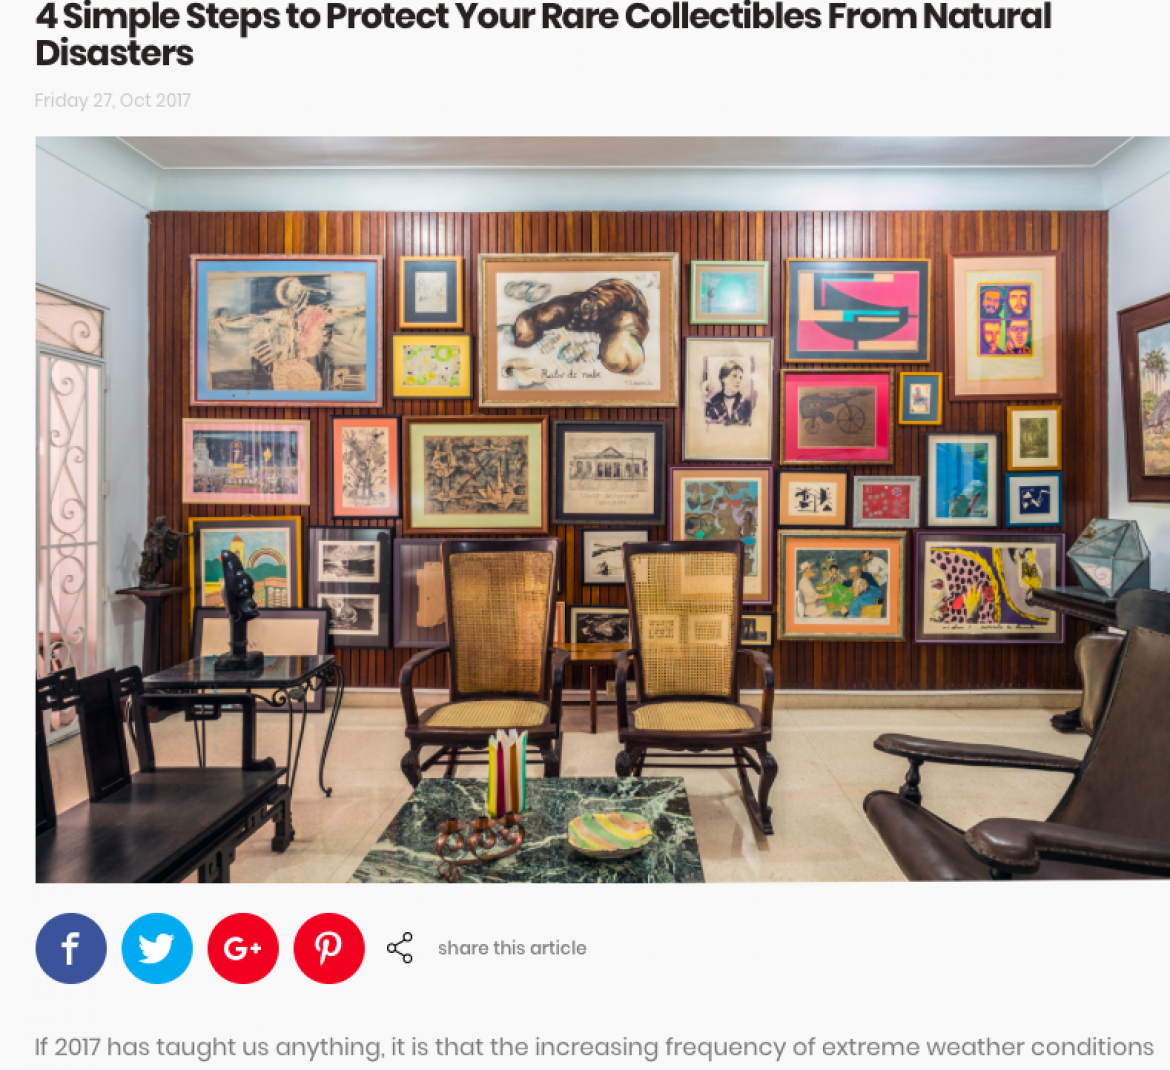 Sortly.com Features David J. Goldberg On Saving Collectibles From Flood & Fire